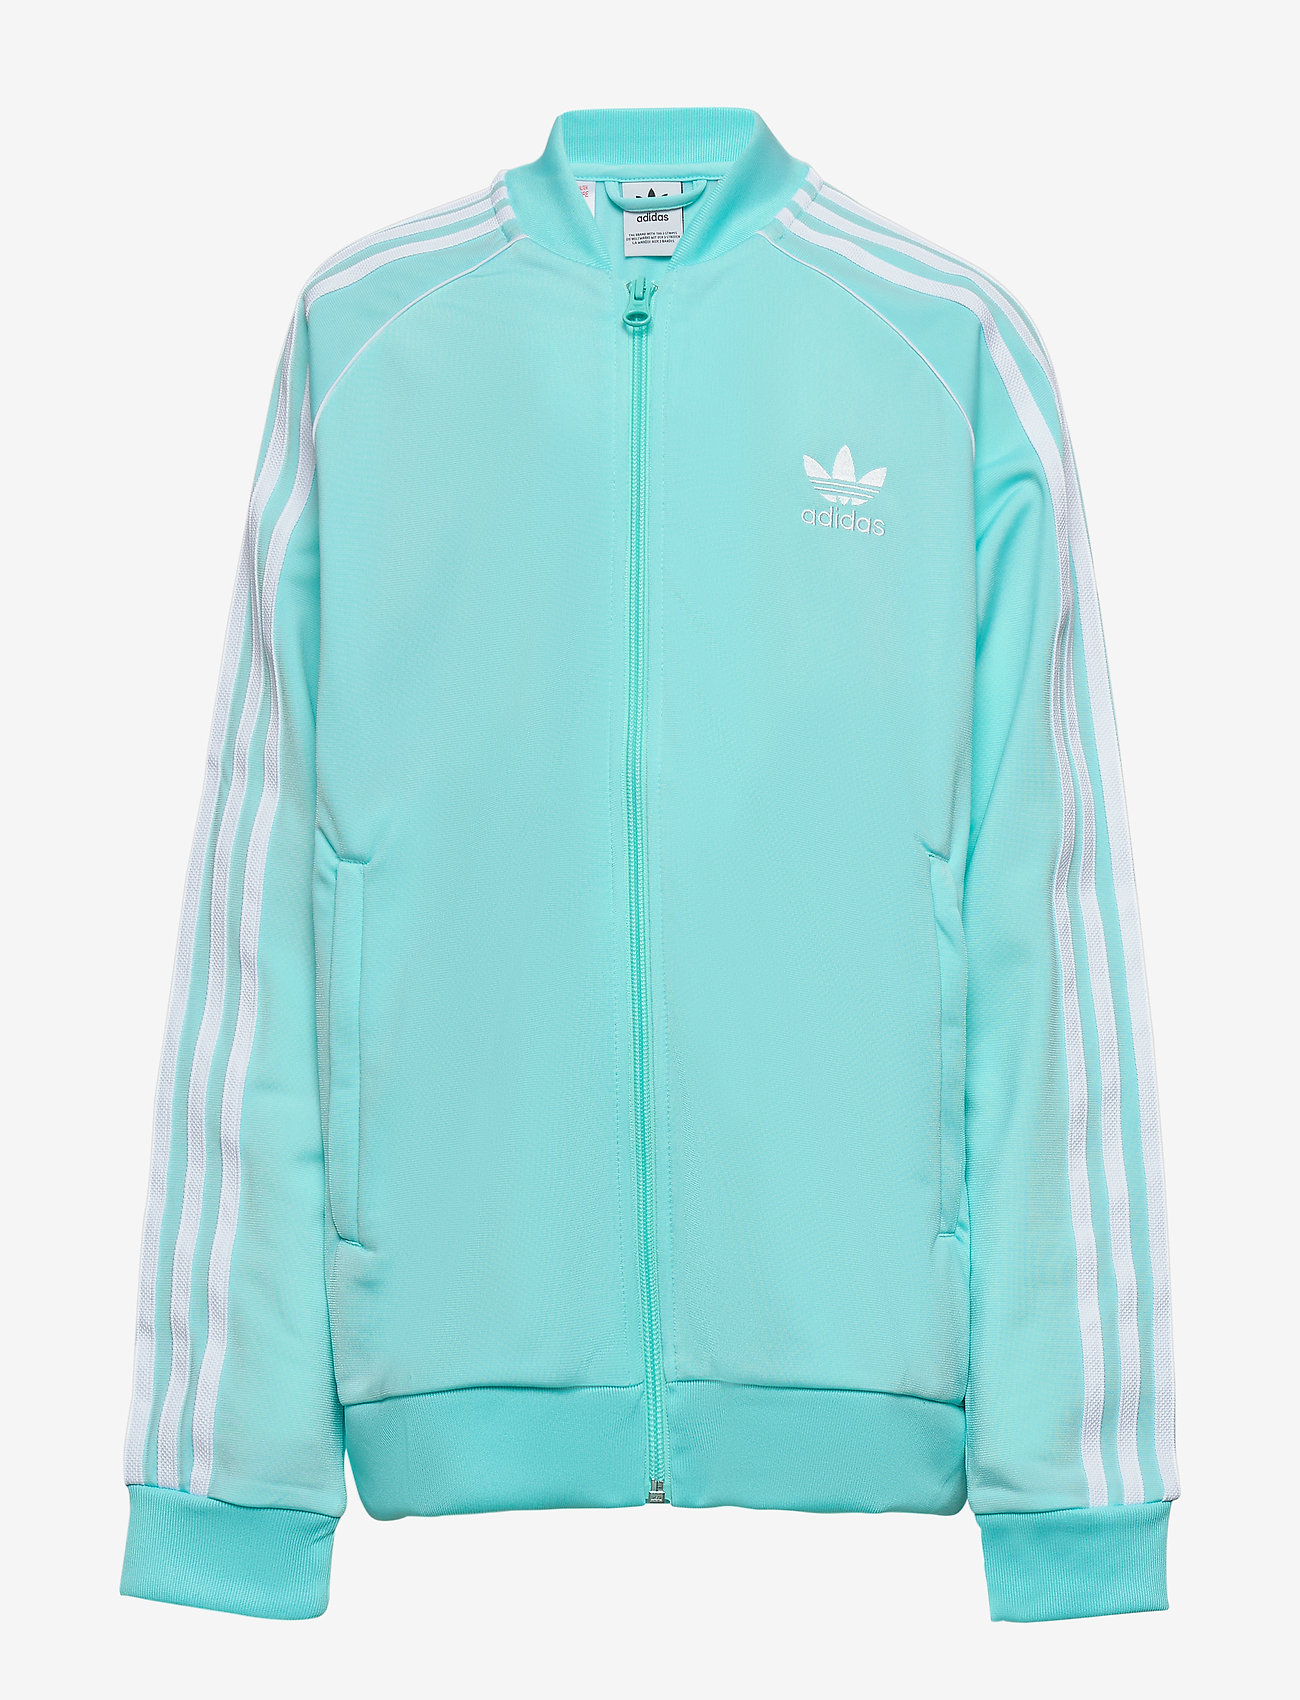 adidas Originals - SUPERSTAR TOP - sweatshirts - claqua/white - 0